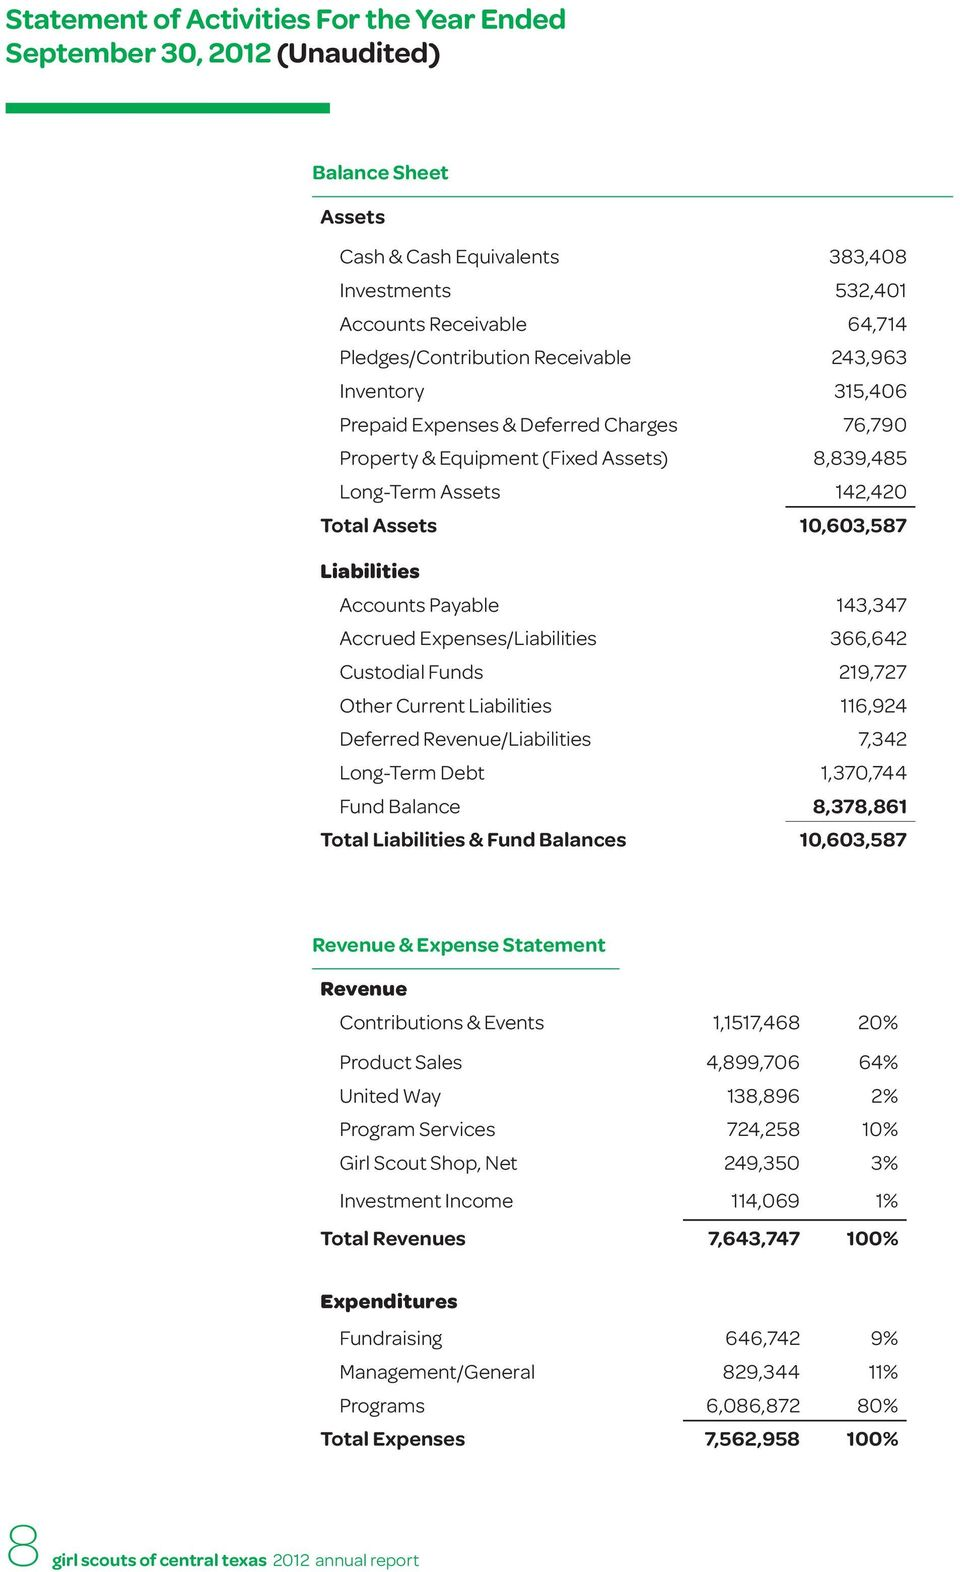 Payable 143,347 Accrued Expenses/Liabilities 366,642 Custodial Funds 219,727 Other Current Liabilities 116,924 Deferred Revenue/Liabilities 7,342 Long-Term Debt 1,370,744 Fund Balance 8,378,861 Total